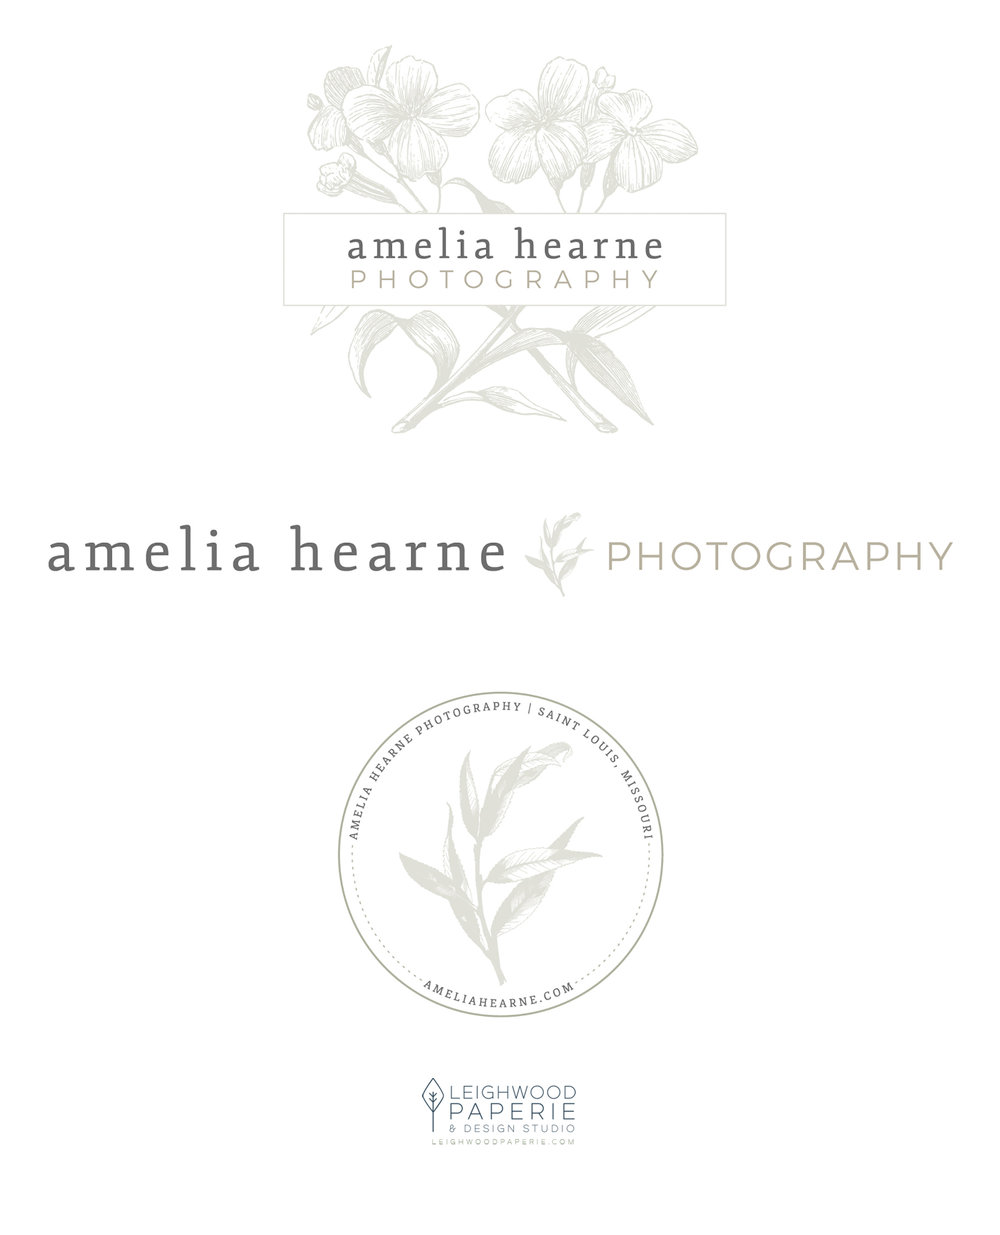 Brand Reveal: Amelia Hearne Photography | Logos Designed by Leighwood Paperie